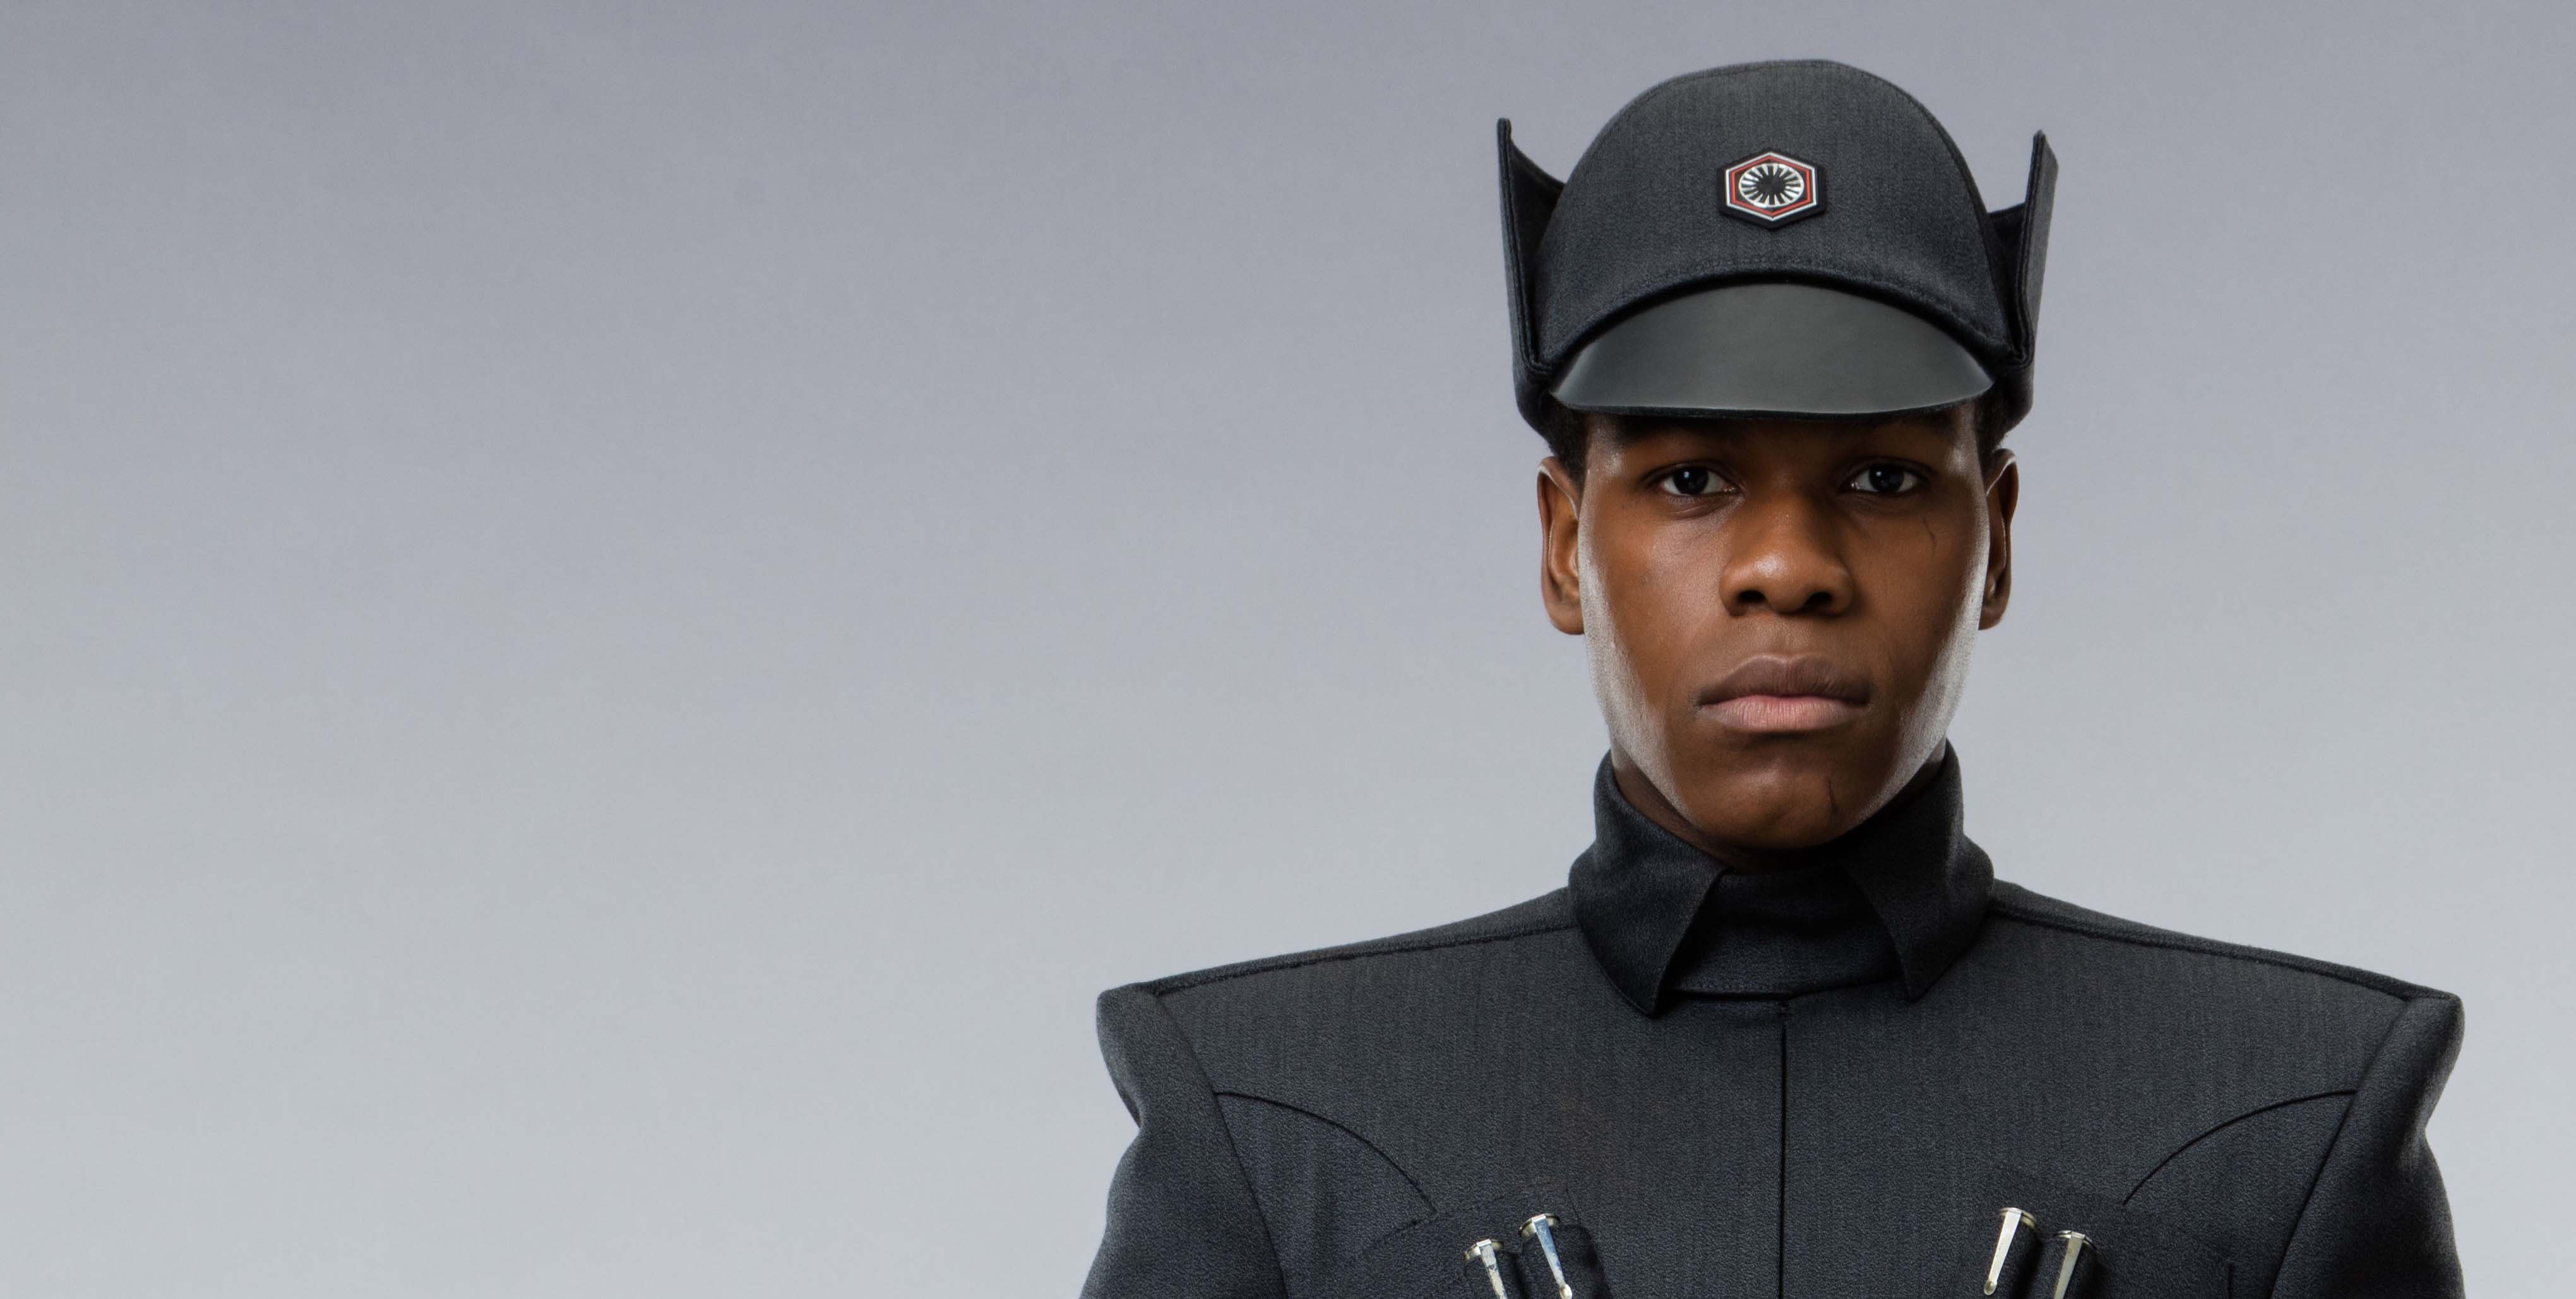 STAR WARS™ First Order Officer Duty Cap Insignia Accessory